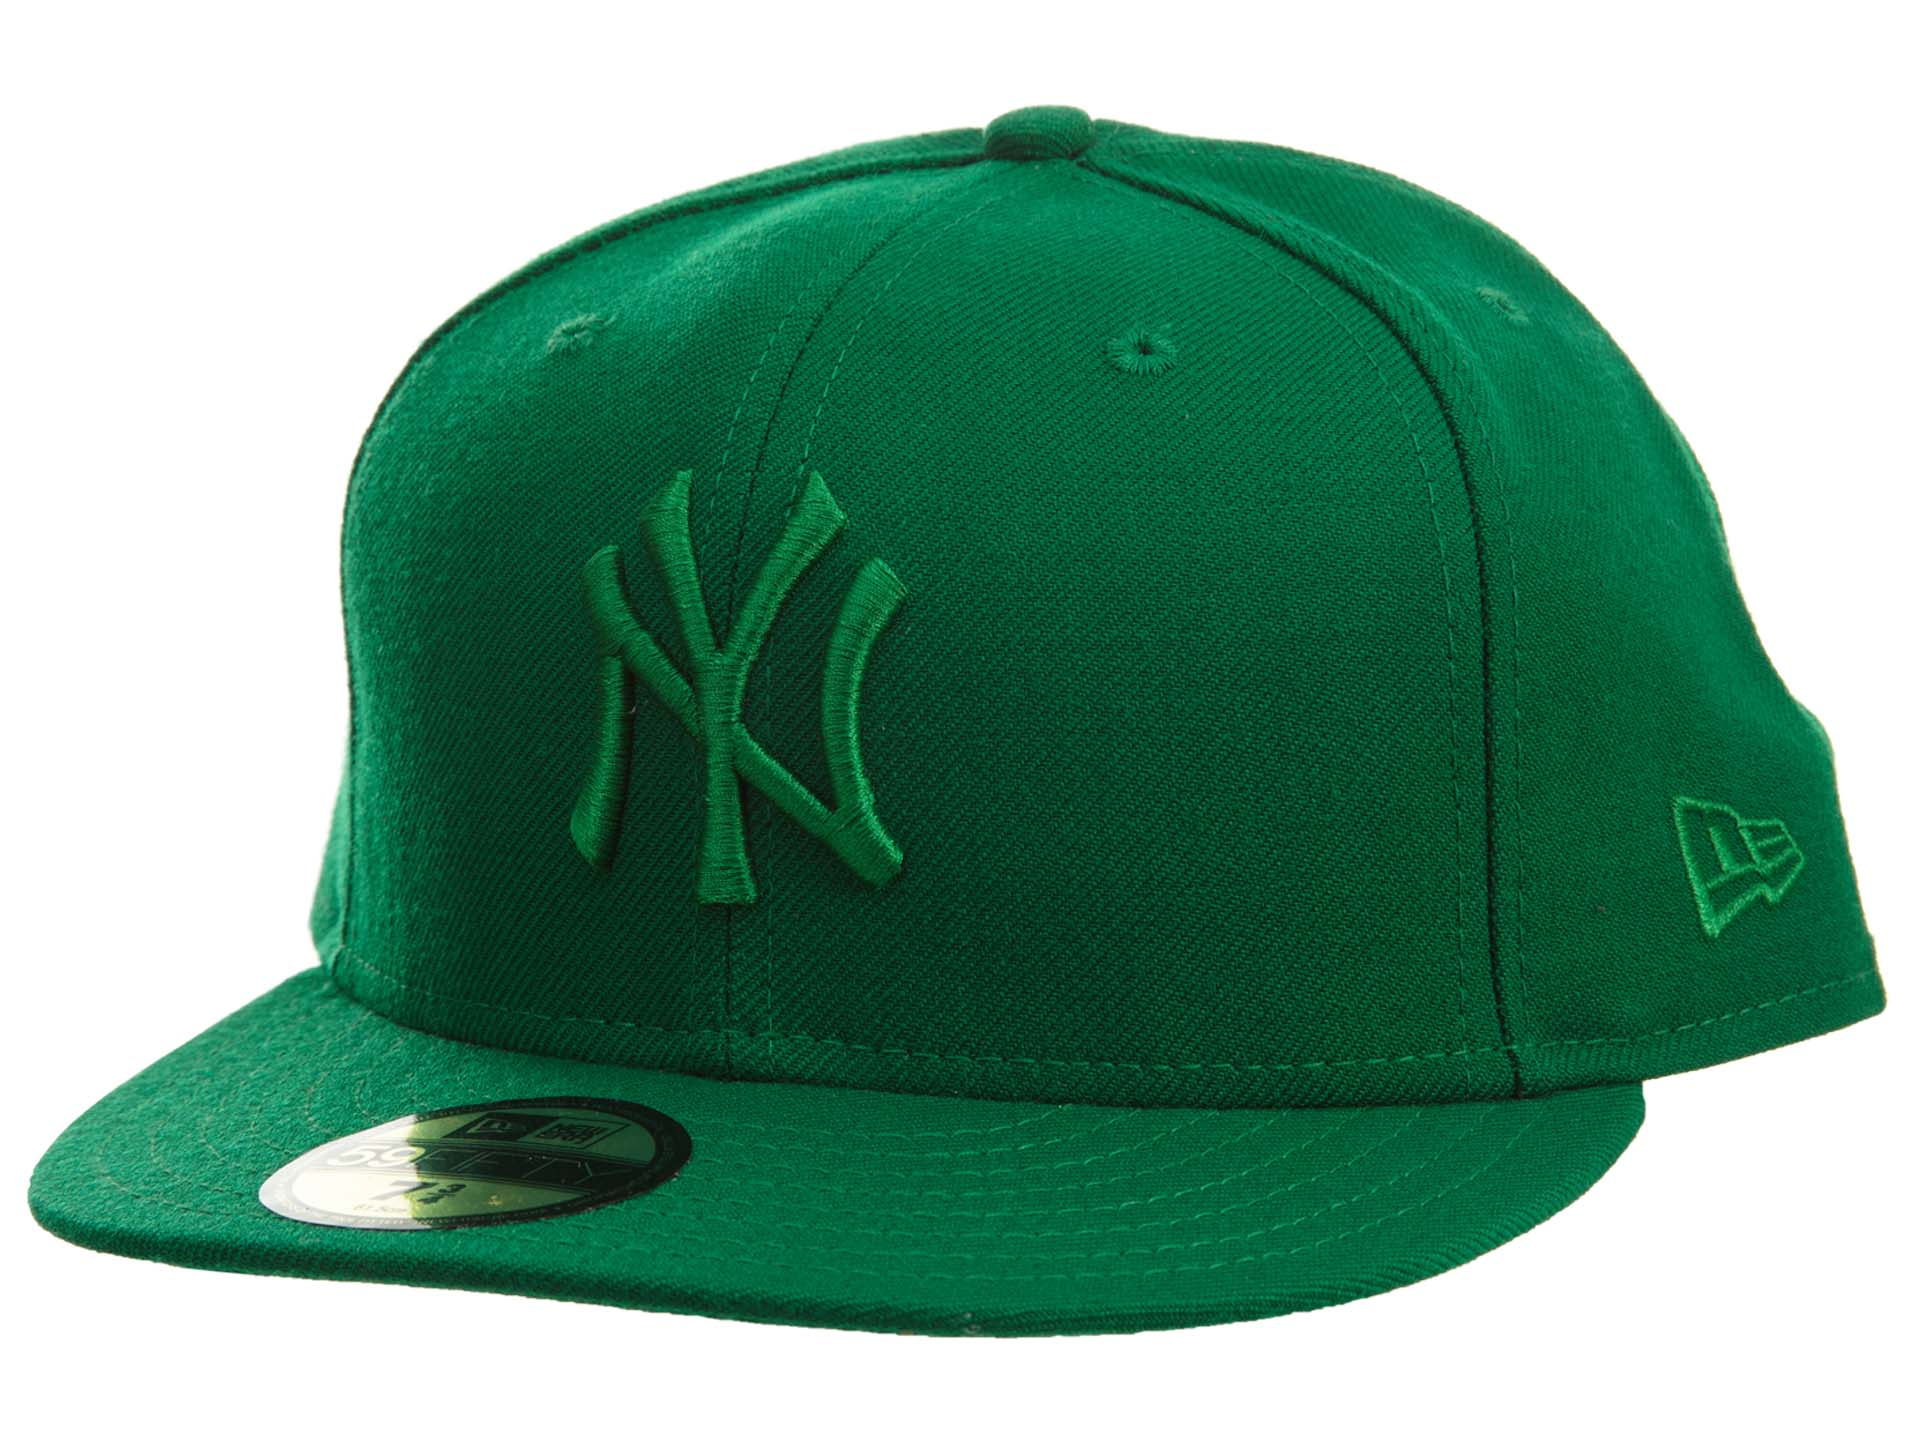 93b68b885ebce New Era 59fifty Nyyankee Fitted Mens Style   Aaa475 – TheEagleShoes